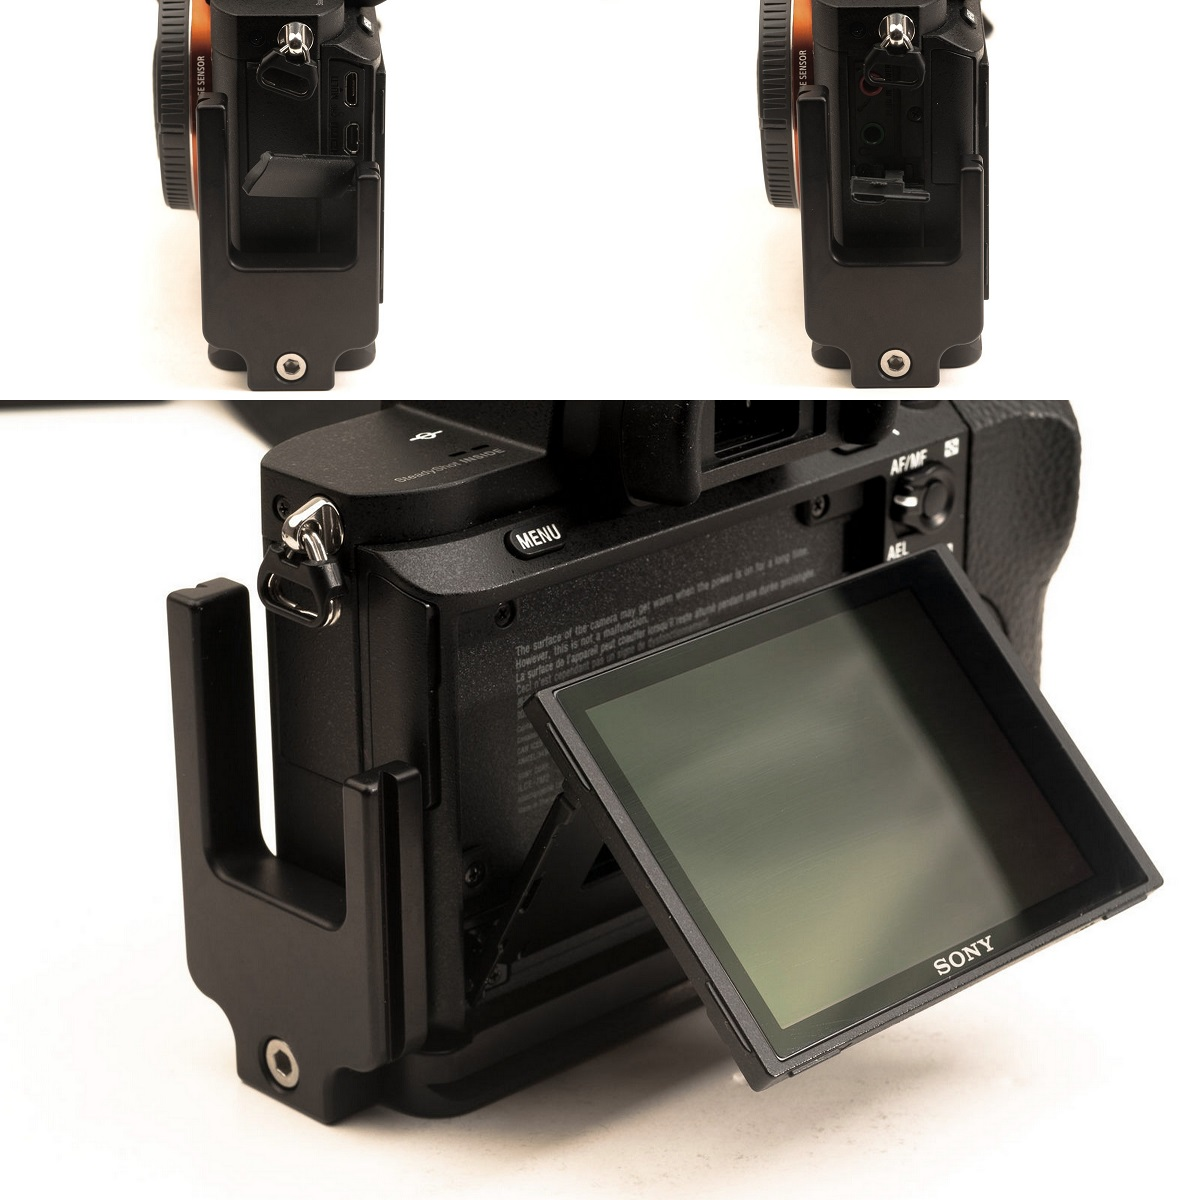 Hejnar PHOTO S-A-7II L Bracket on SONY a7II - side fitting details